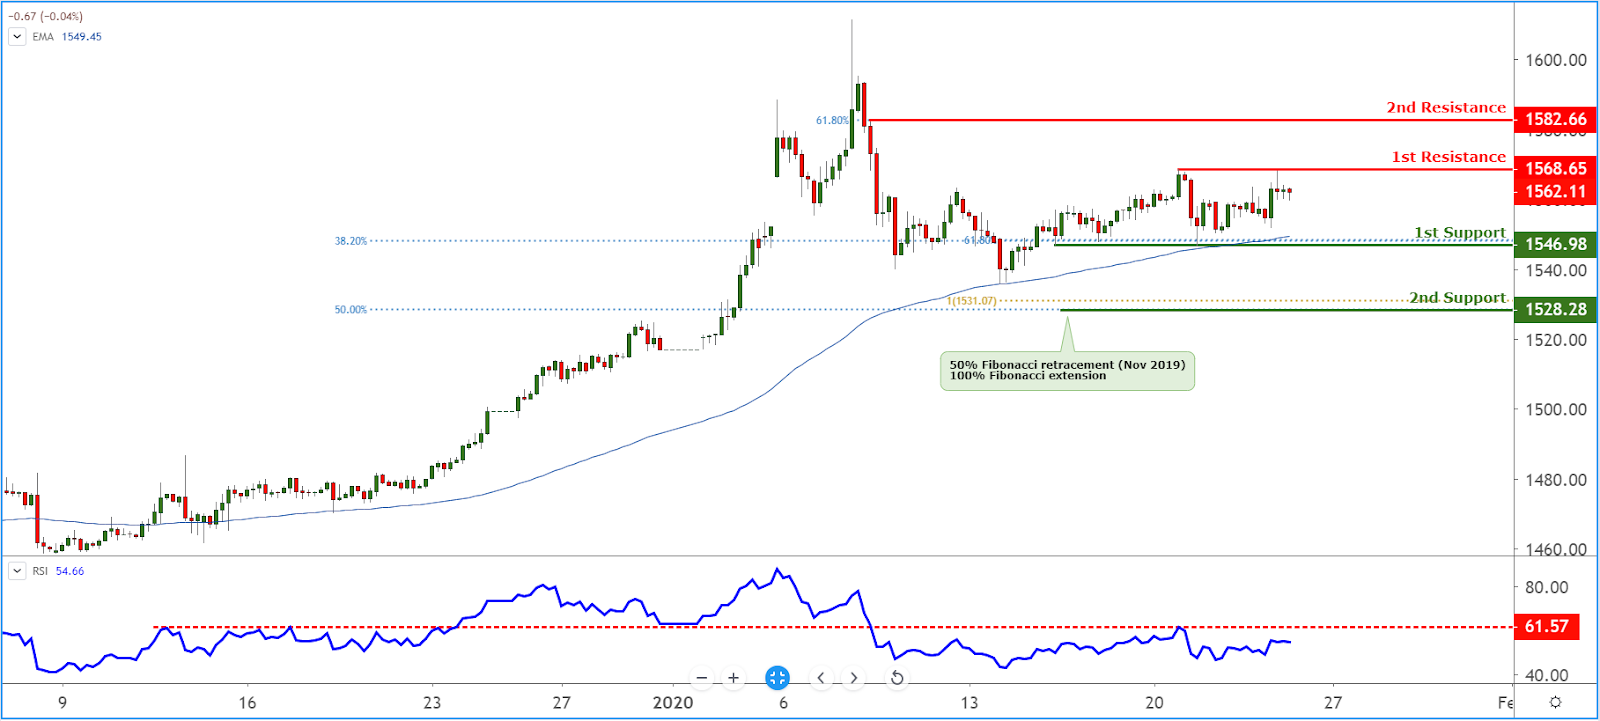 XAUUSD Chart, Source: TradingView.com